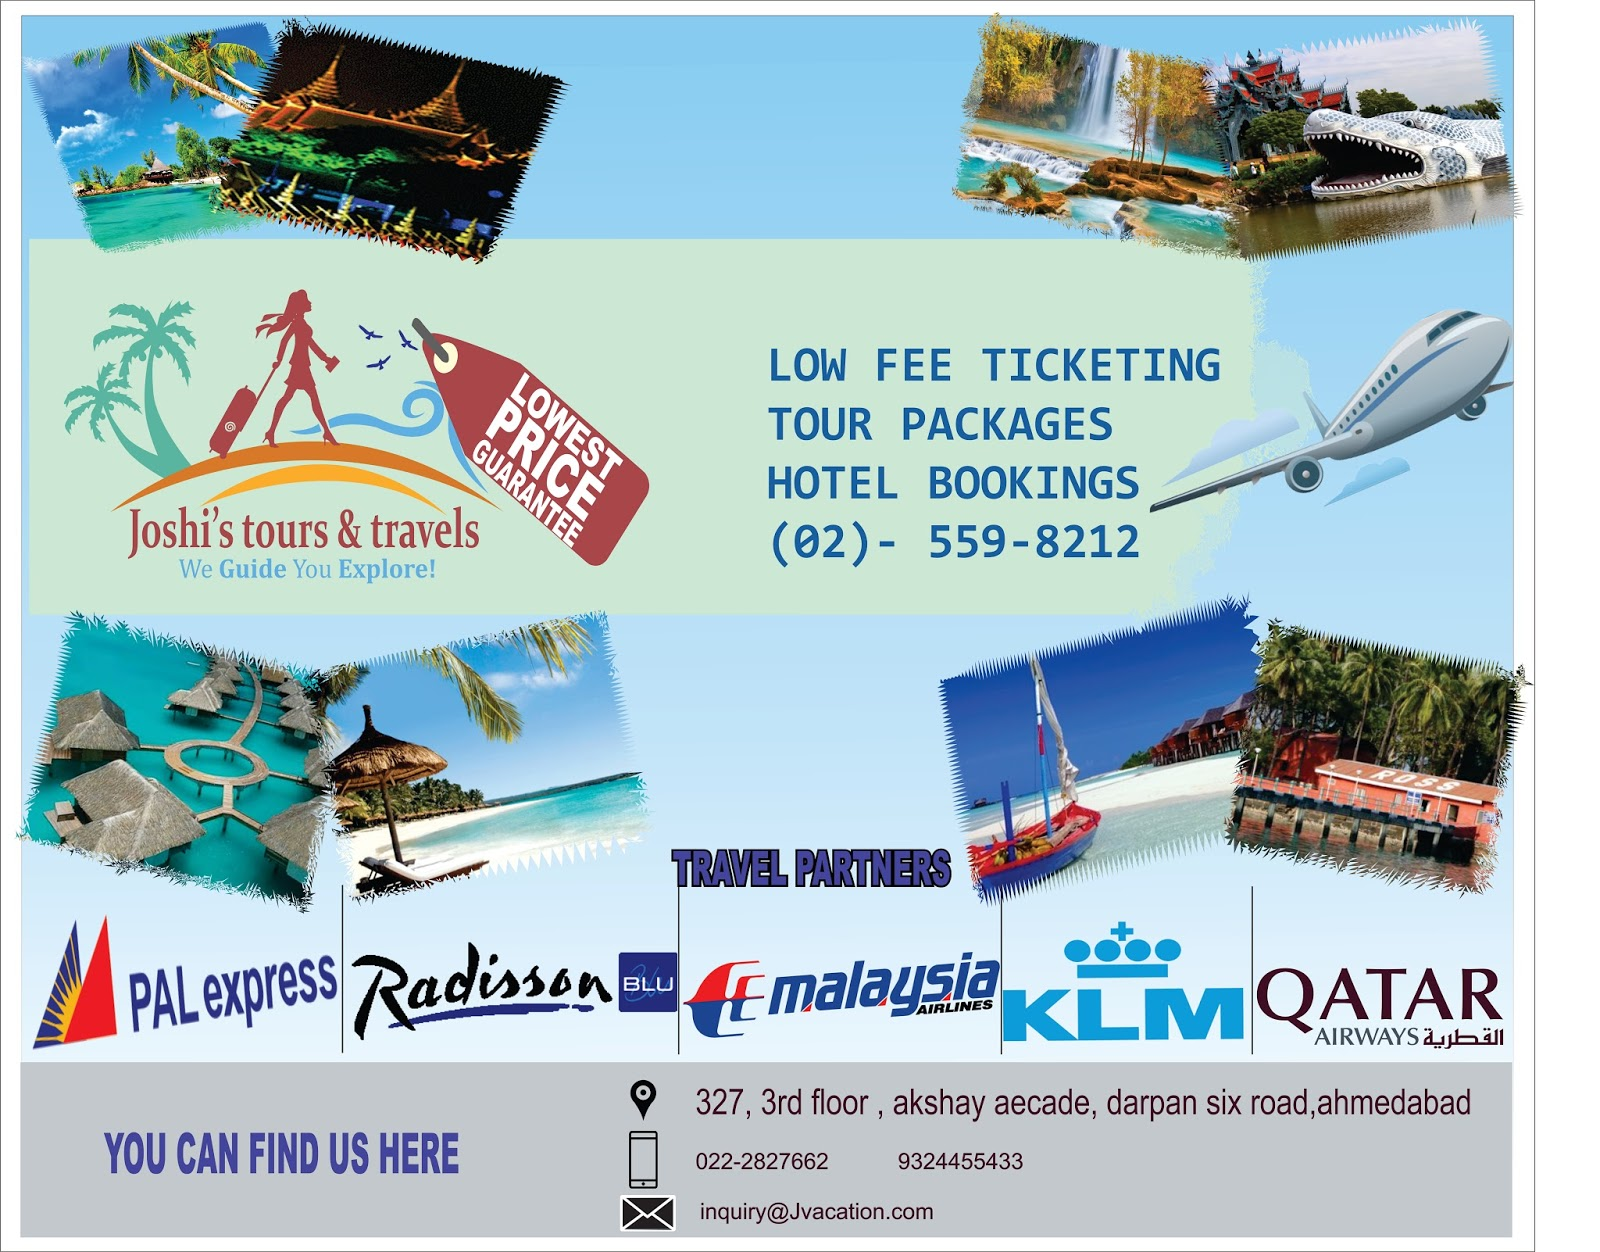 Advertisement Design In Coreldraw For Travelling Company